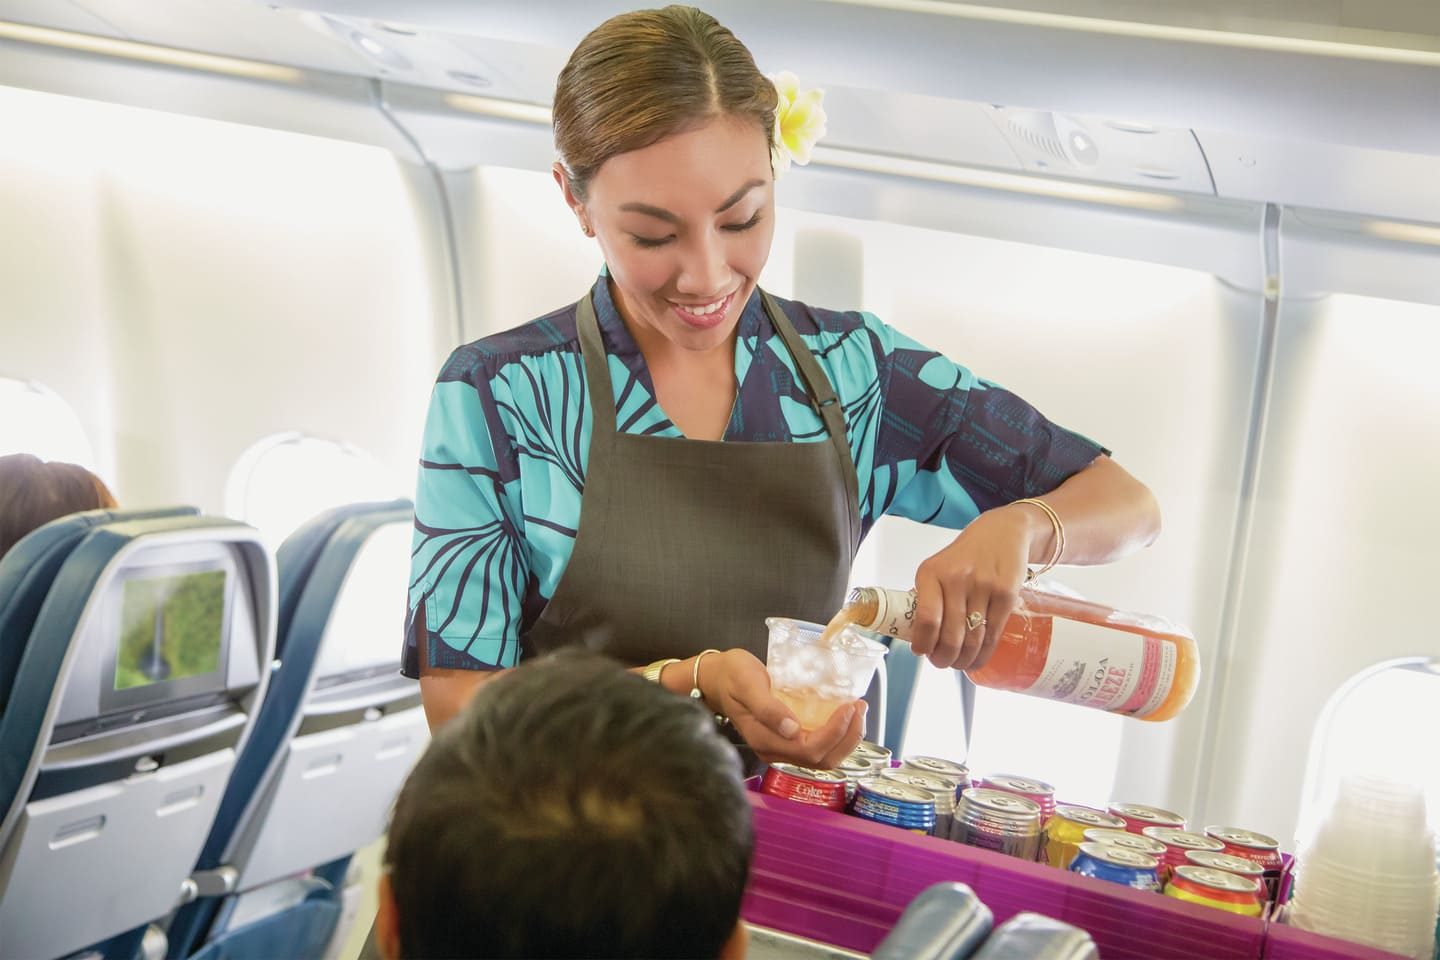 Hawaiian Airlines New Meal Program and Designer Uniforms